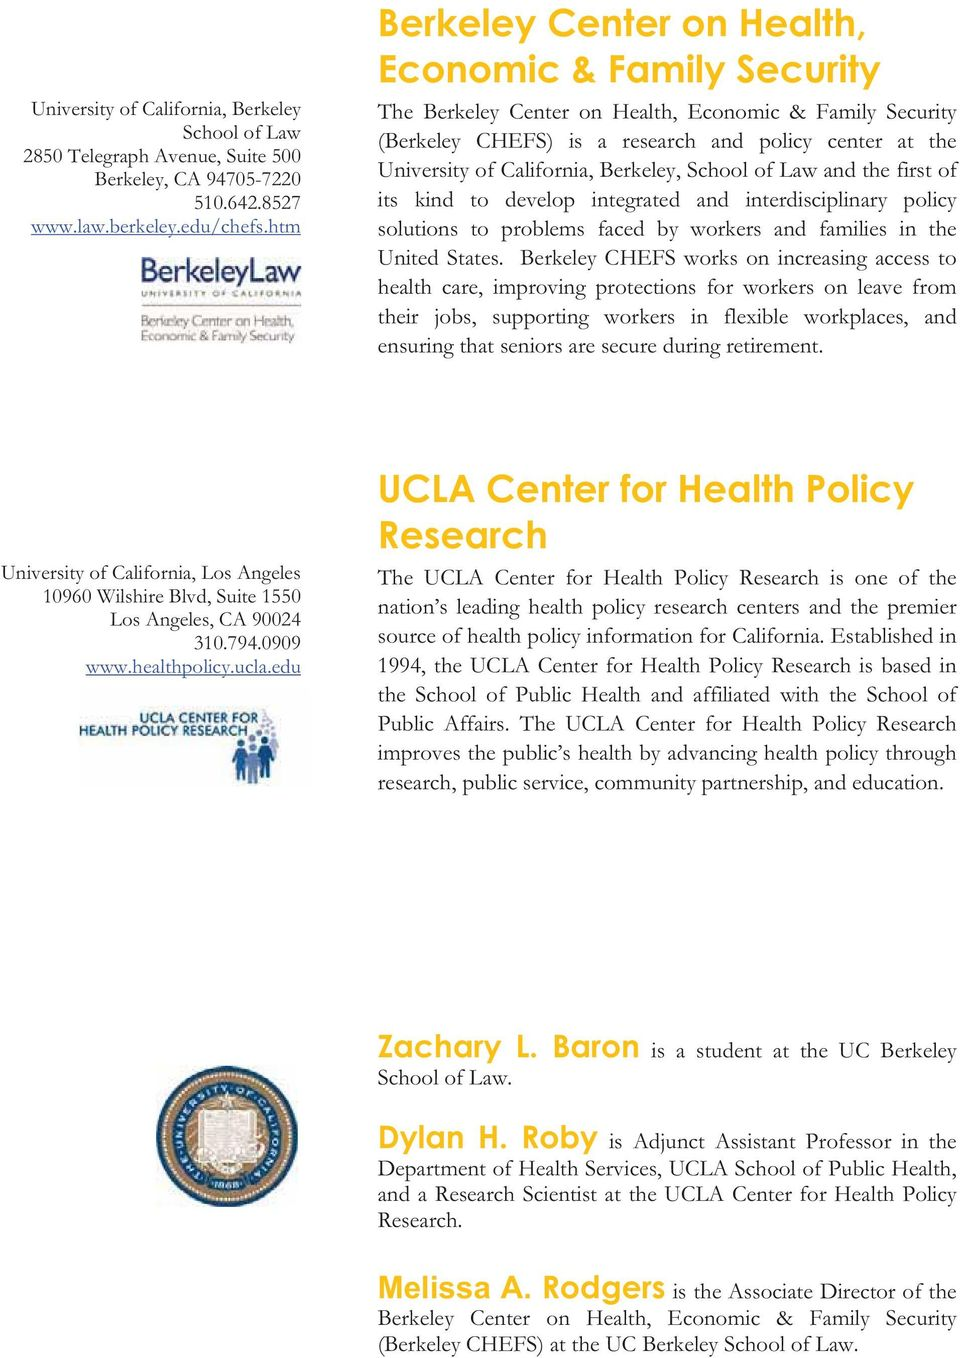 Berkeley, School of Law and the first of its kind to develop integrated and interdisciplinary policy solutions to problems faced by workers and families in the United States.